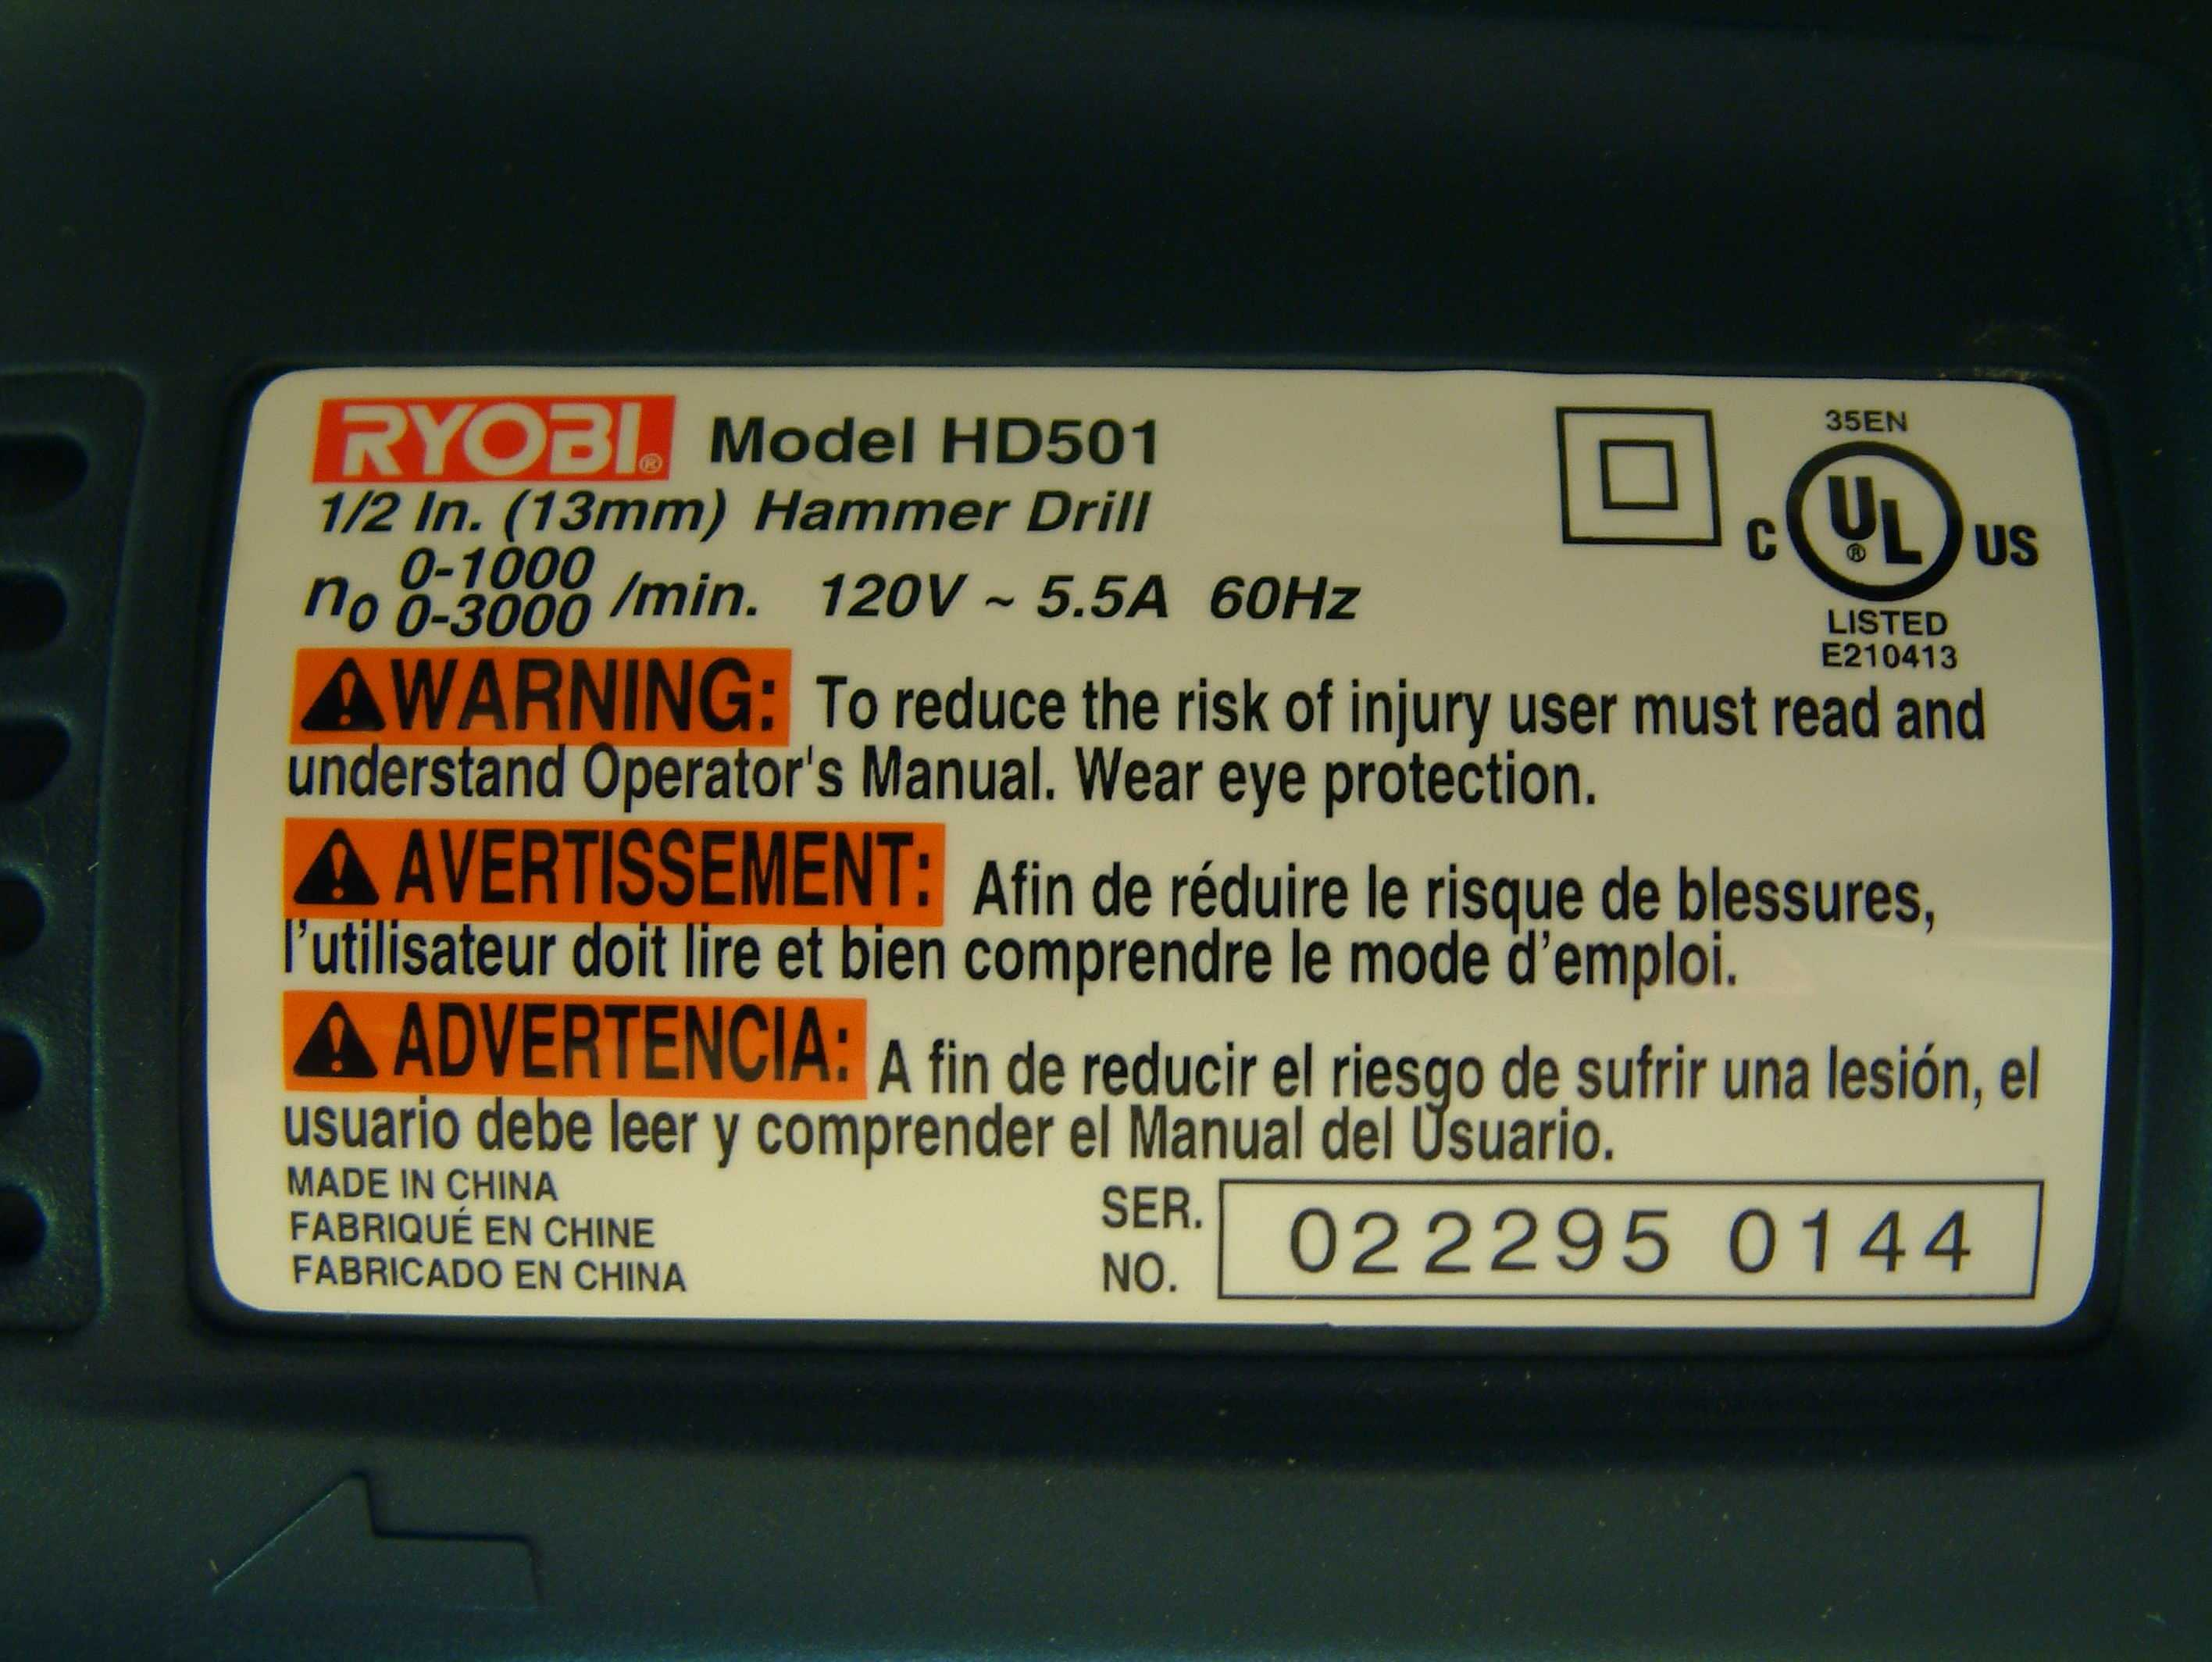 Picture of Label on Recalled Hammer Drill